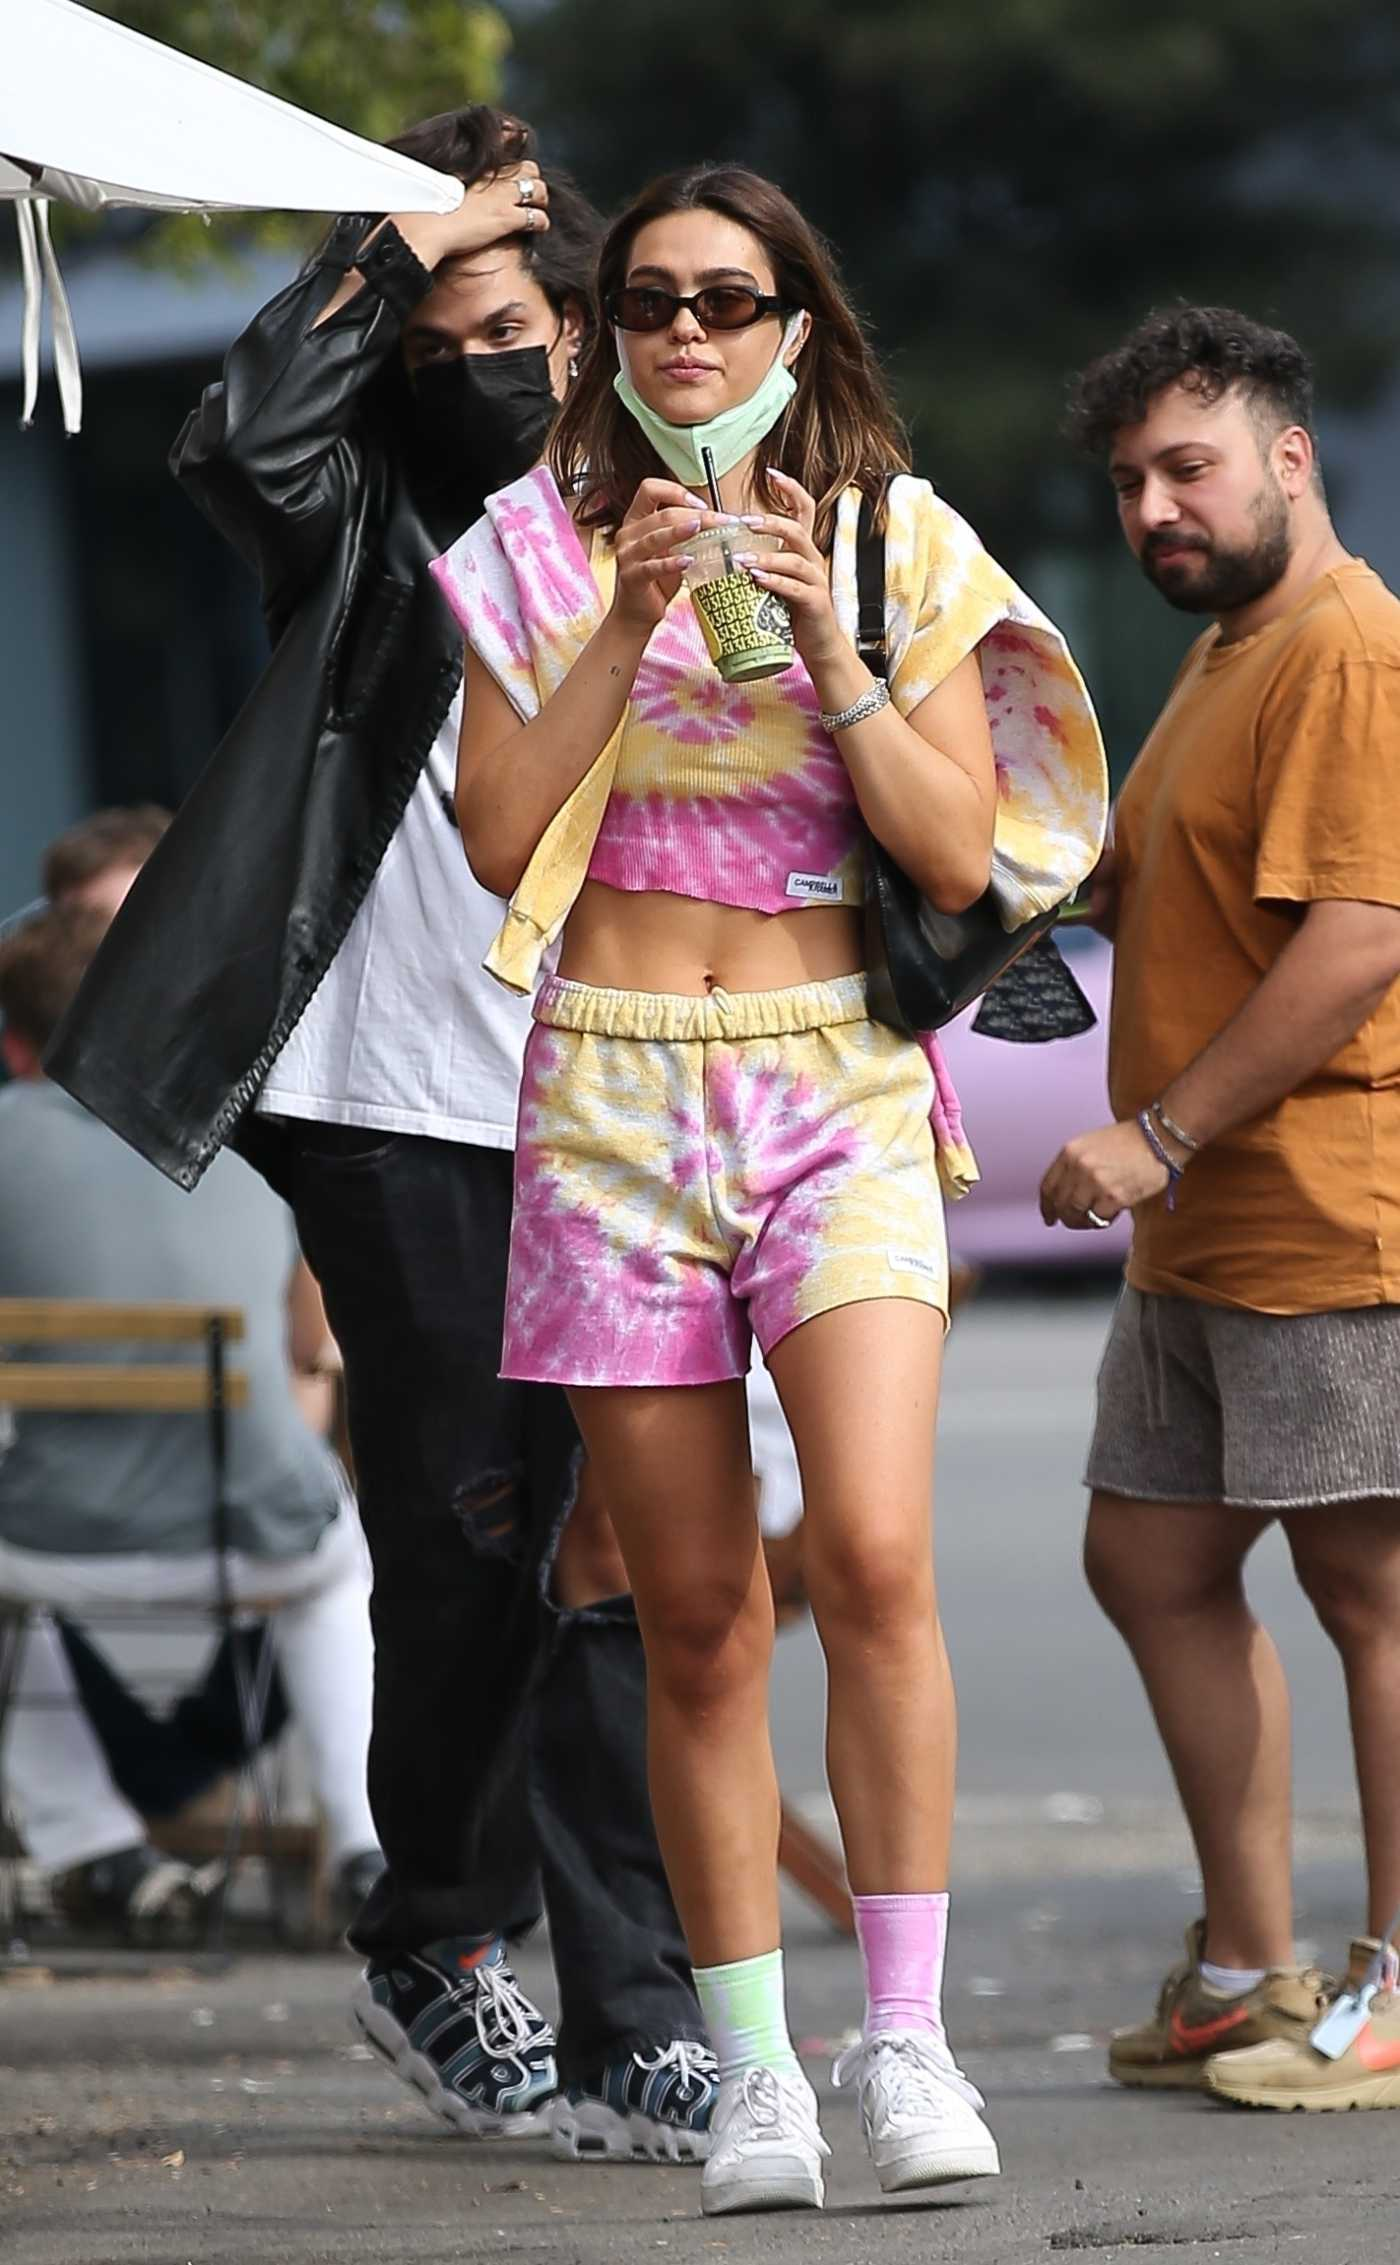 Amelia Hamlin in a Colorful Tie-Dye Outfit Was Seen Out in West Hollywood 10/31/2020